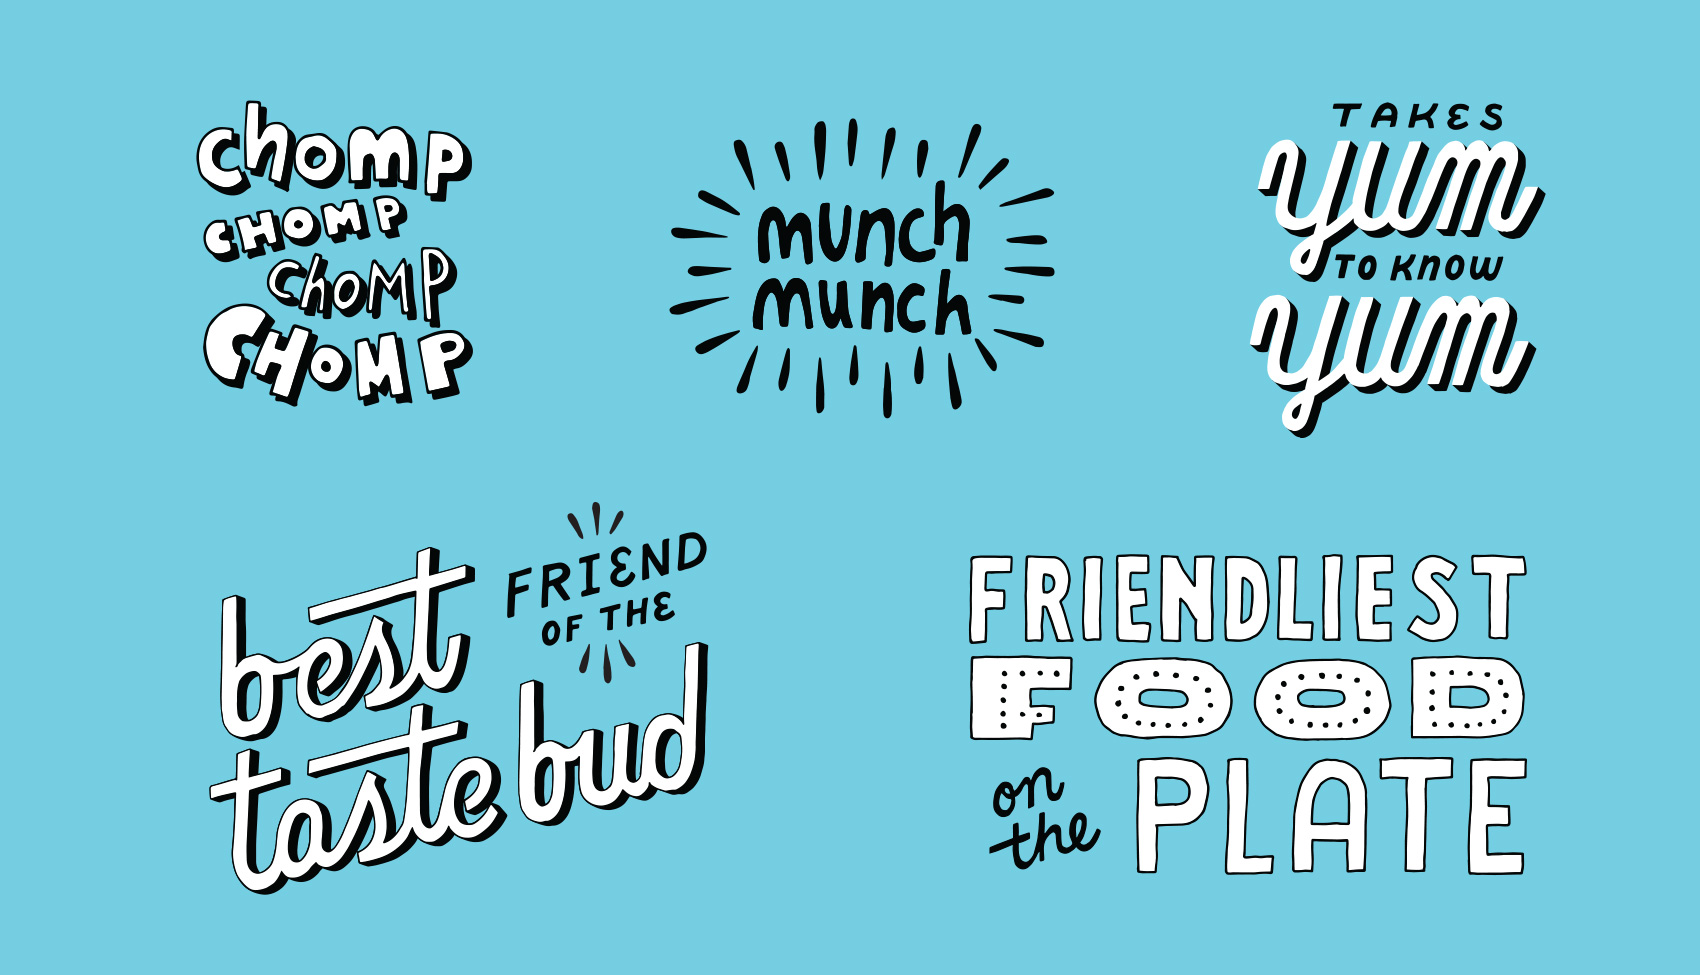 Small hand lettering bits and pieces: chomp chomp chomp, munch munch, takes yum to know yum, best friend of the tastebud, and friendliest food on the plate.